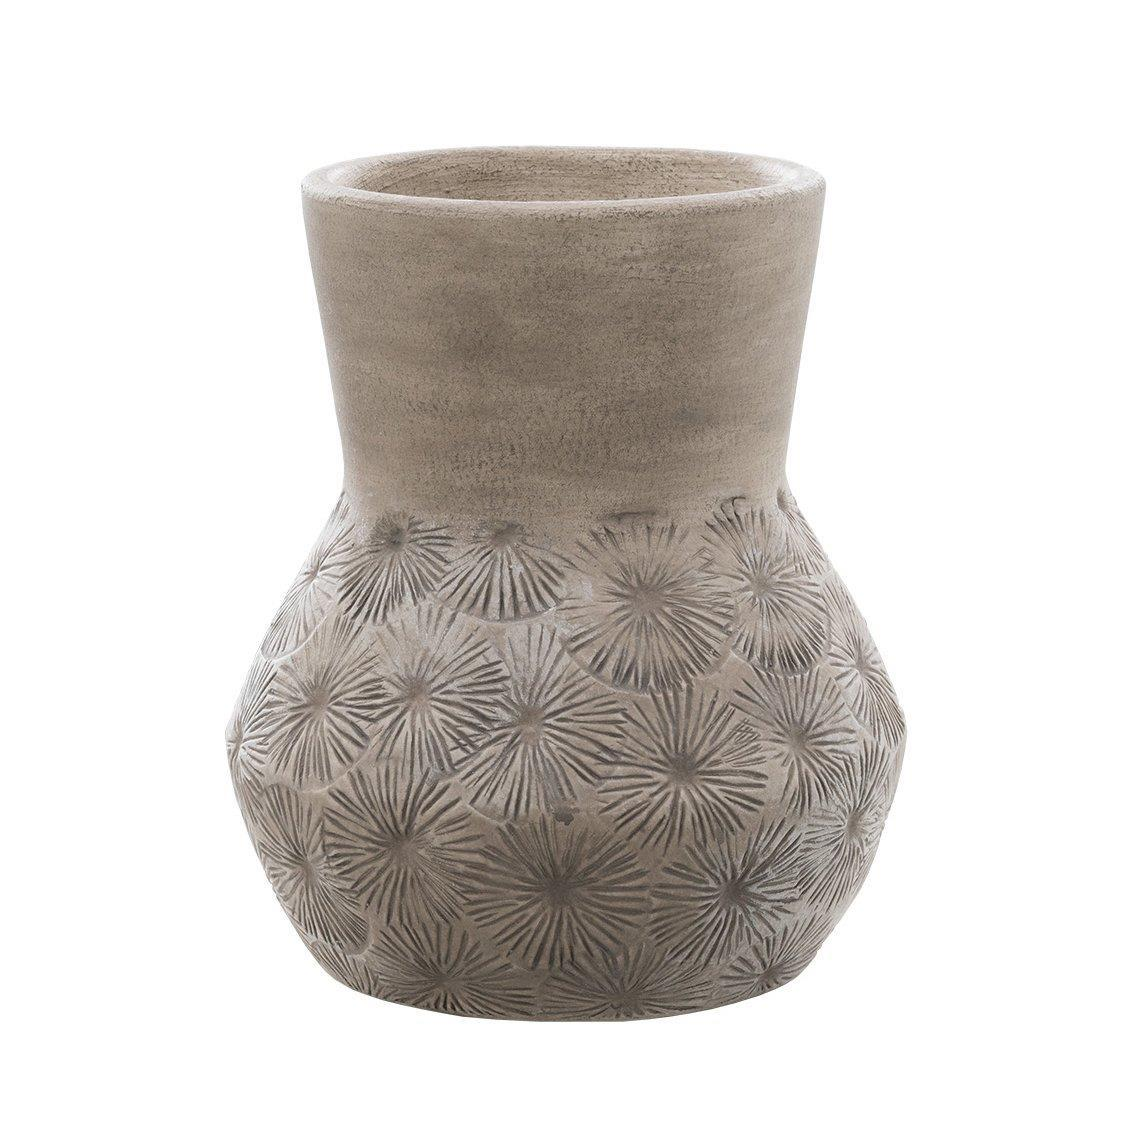 (Dassie Artisan) Chickadee Zaire Ceramic Vase Grey Medium